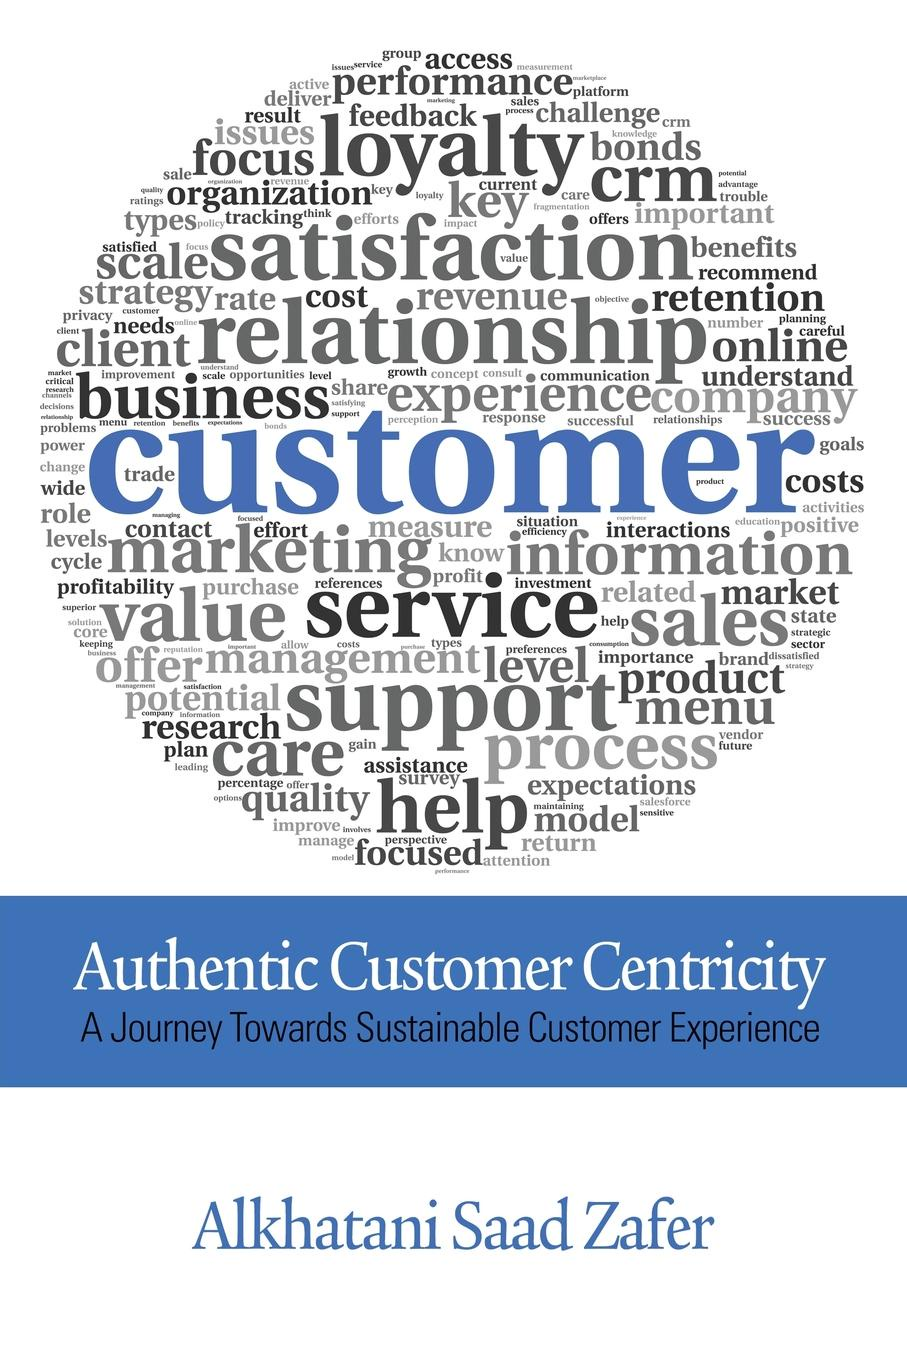 Alkhatani Saad Zafer Authentic Customer Centricity andrew frawley igniting customer connections fire up your company s growth by multiplying customer experience and engagement